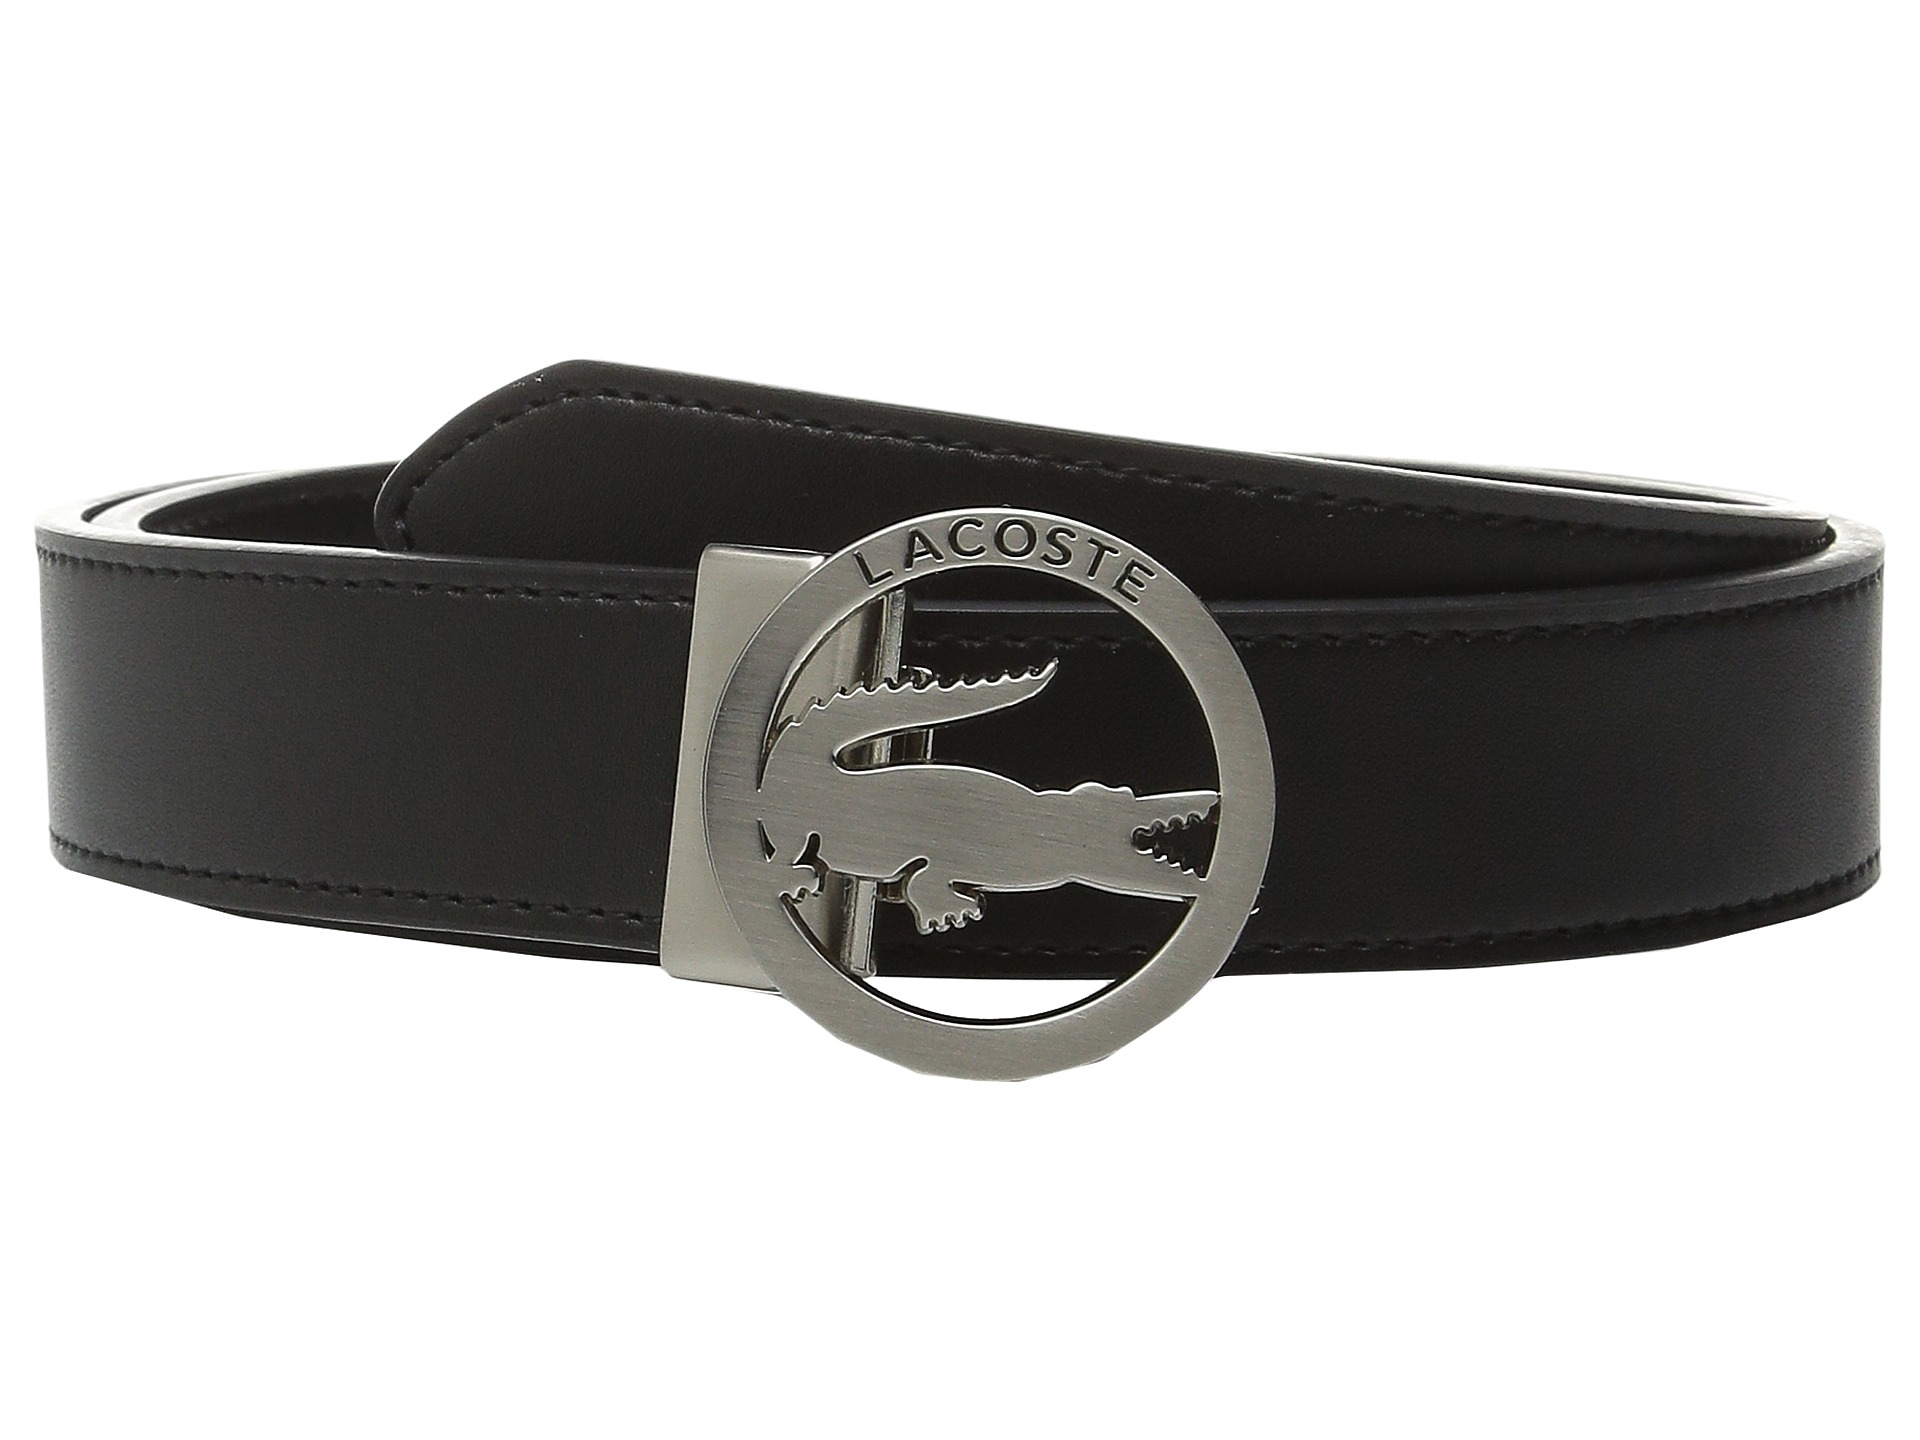 Lacoste Premium Leather Belt Cutout Buckle in Black